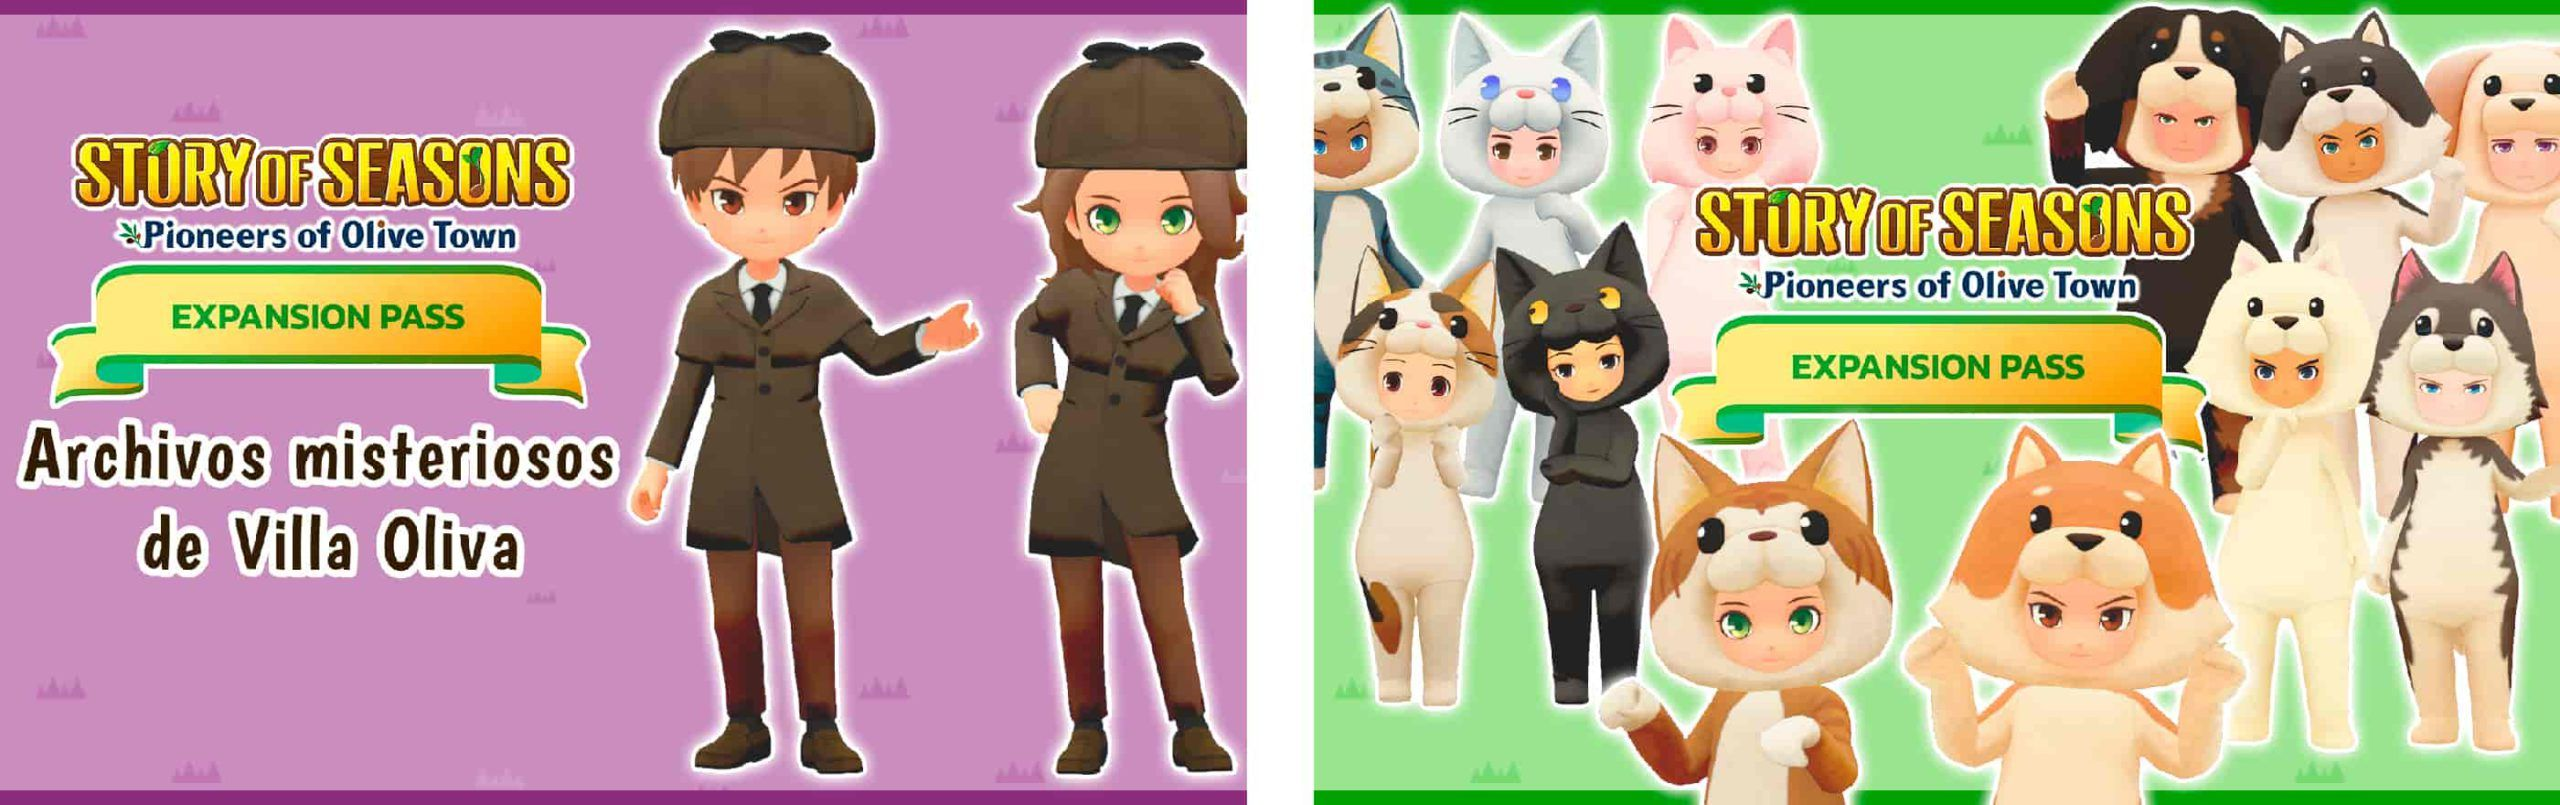 Story of seasons expansion